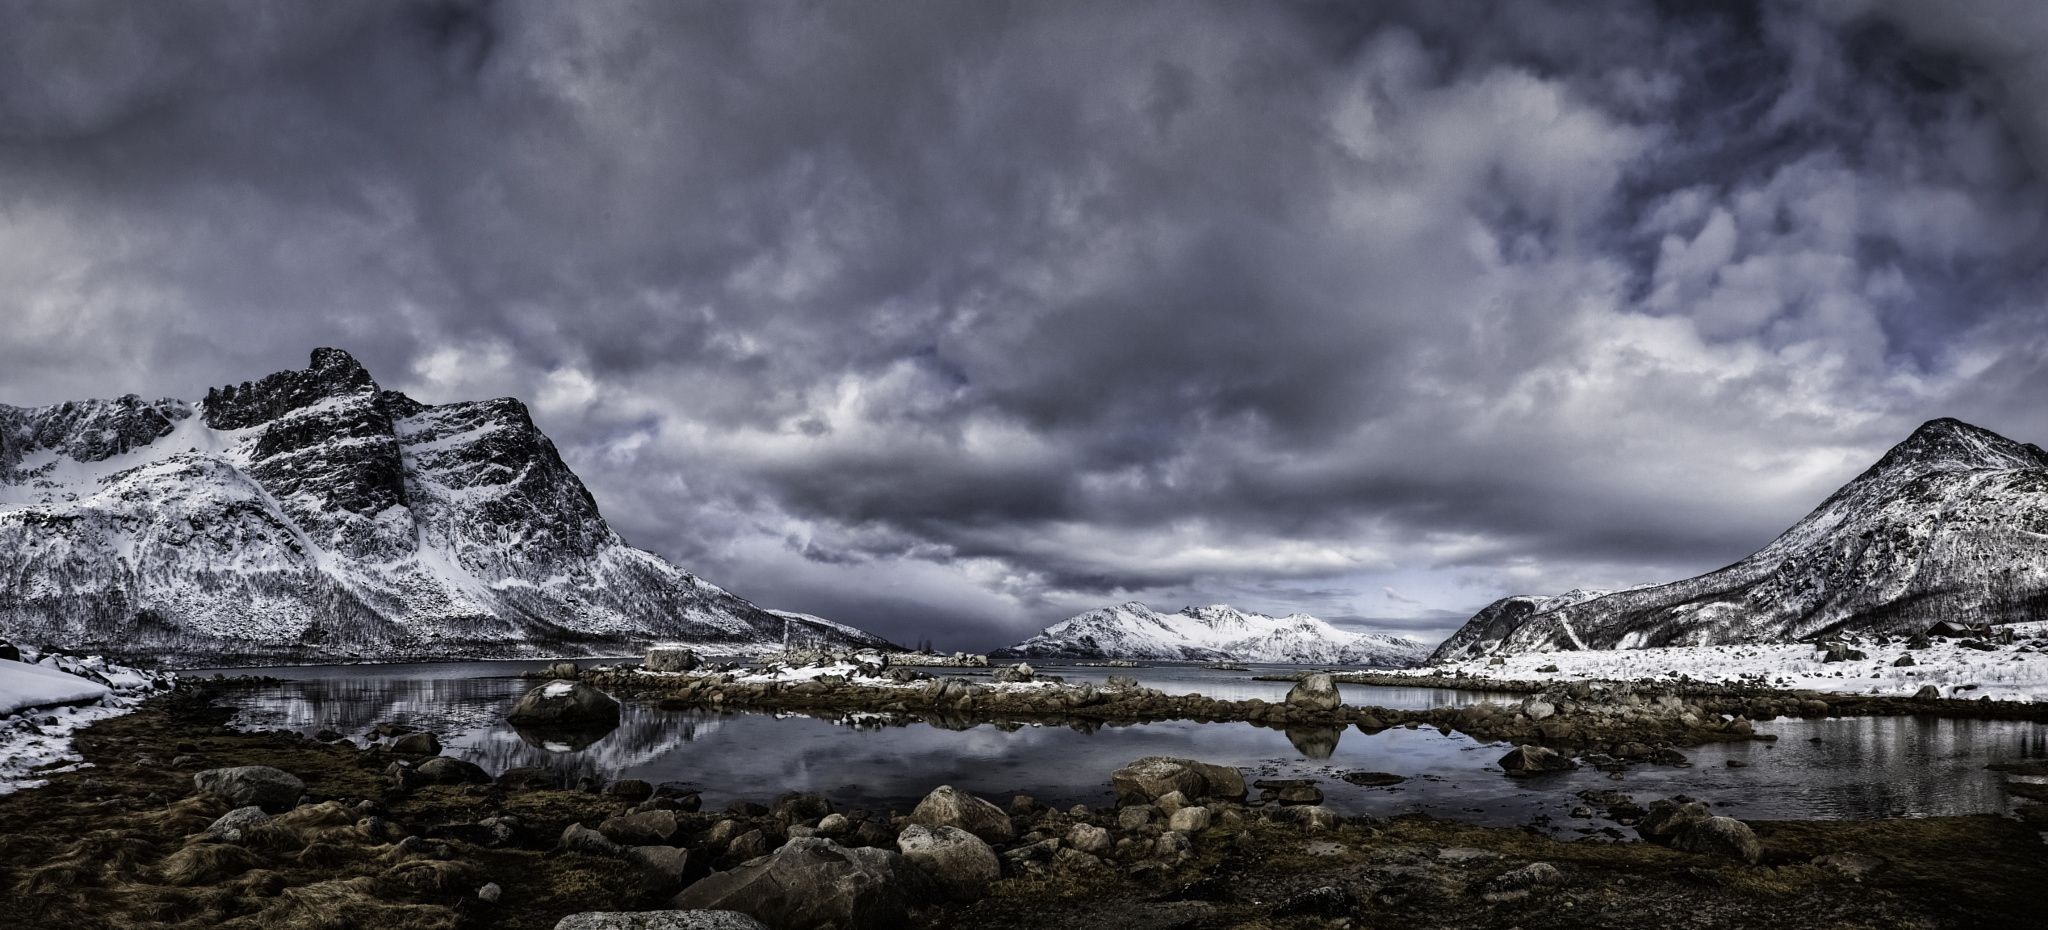 Looking Down The Fjord by Nigel Jones on 500px